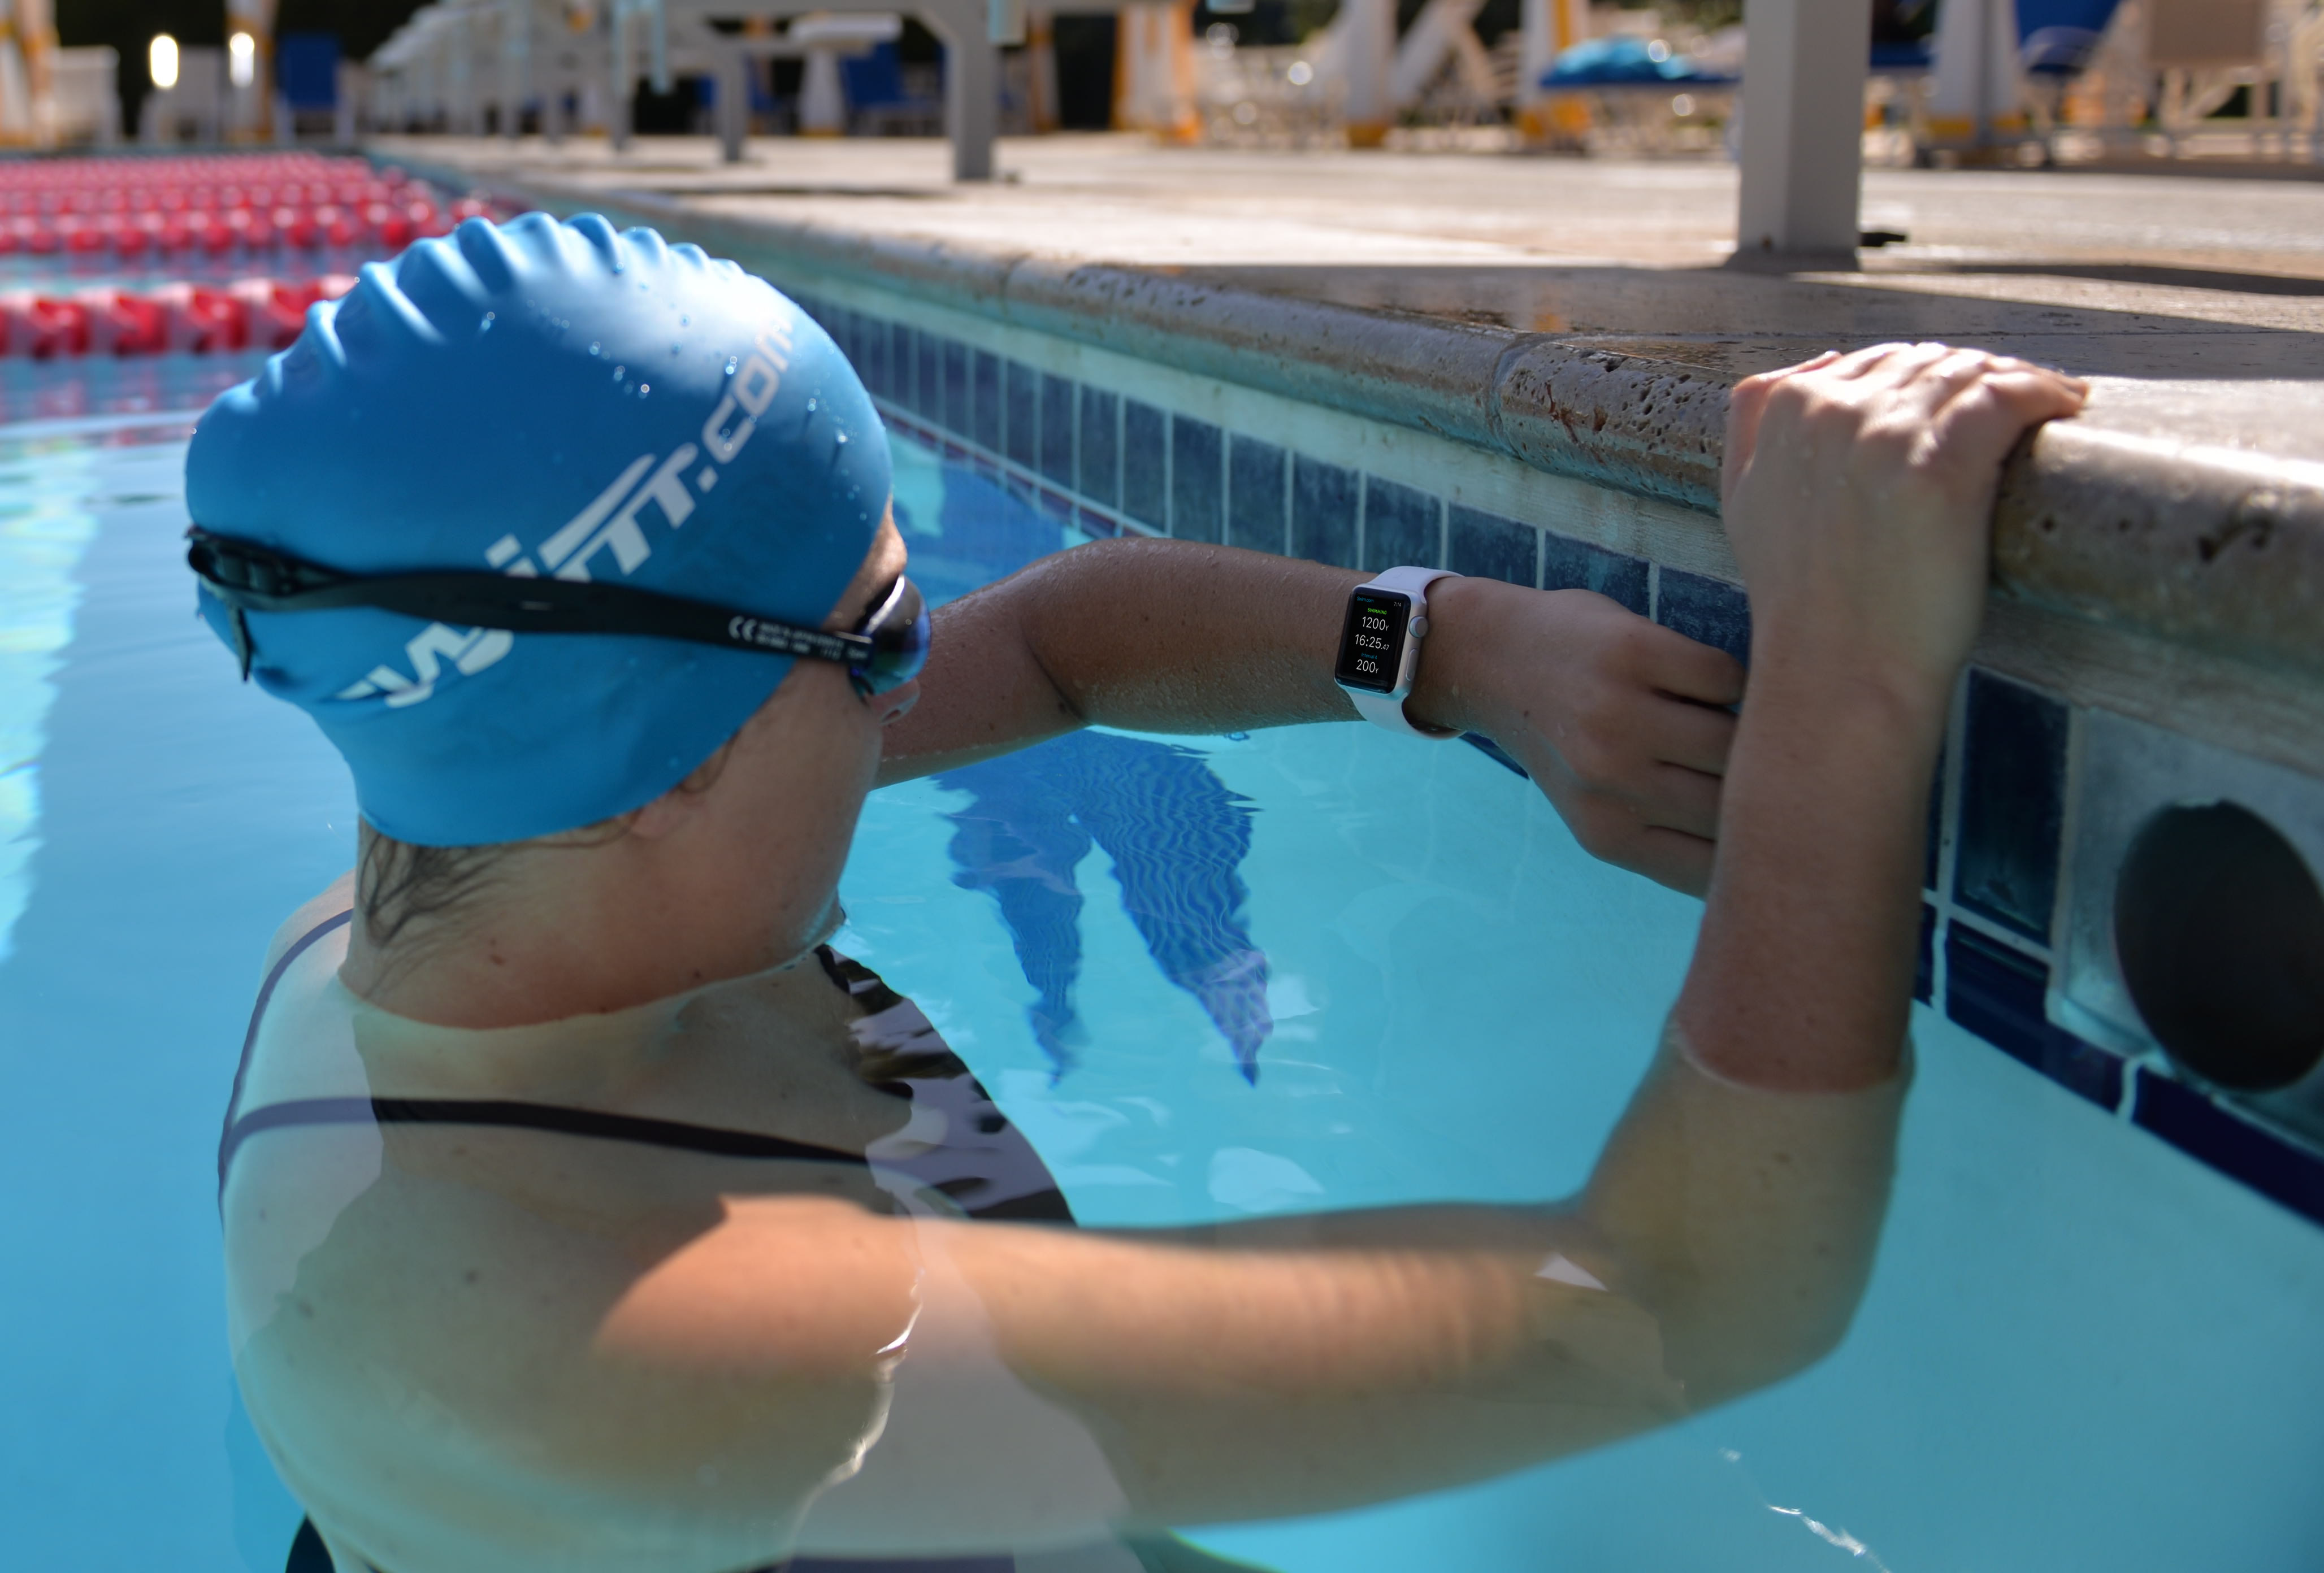 Swim.com Apple Watch 6